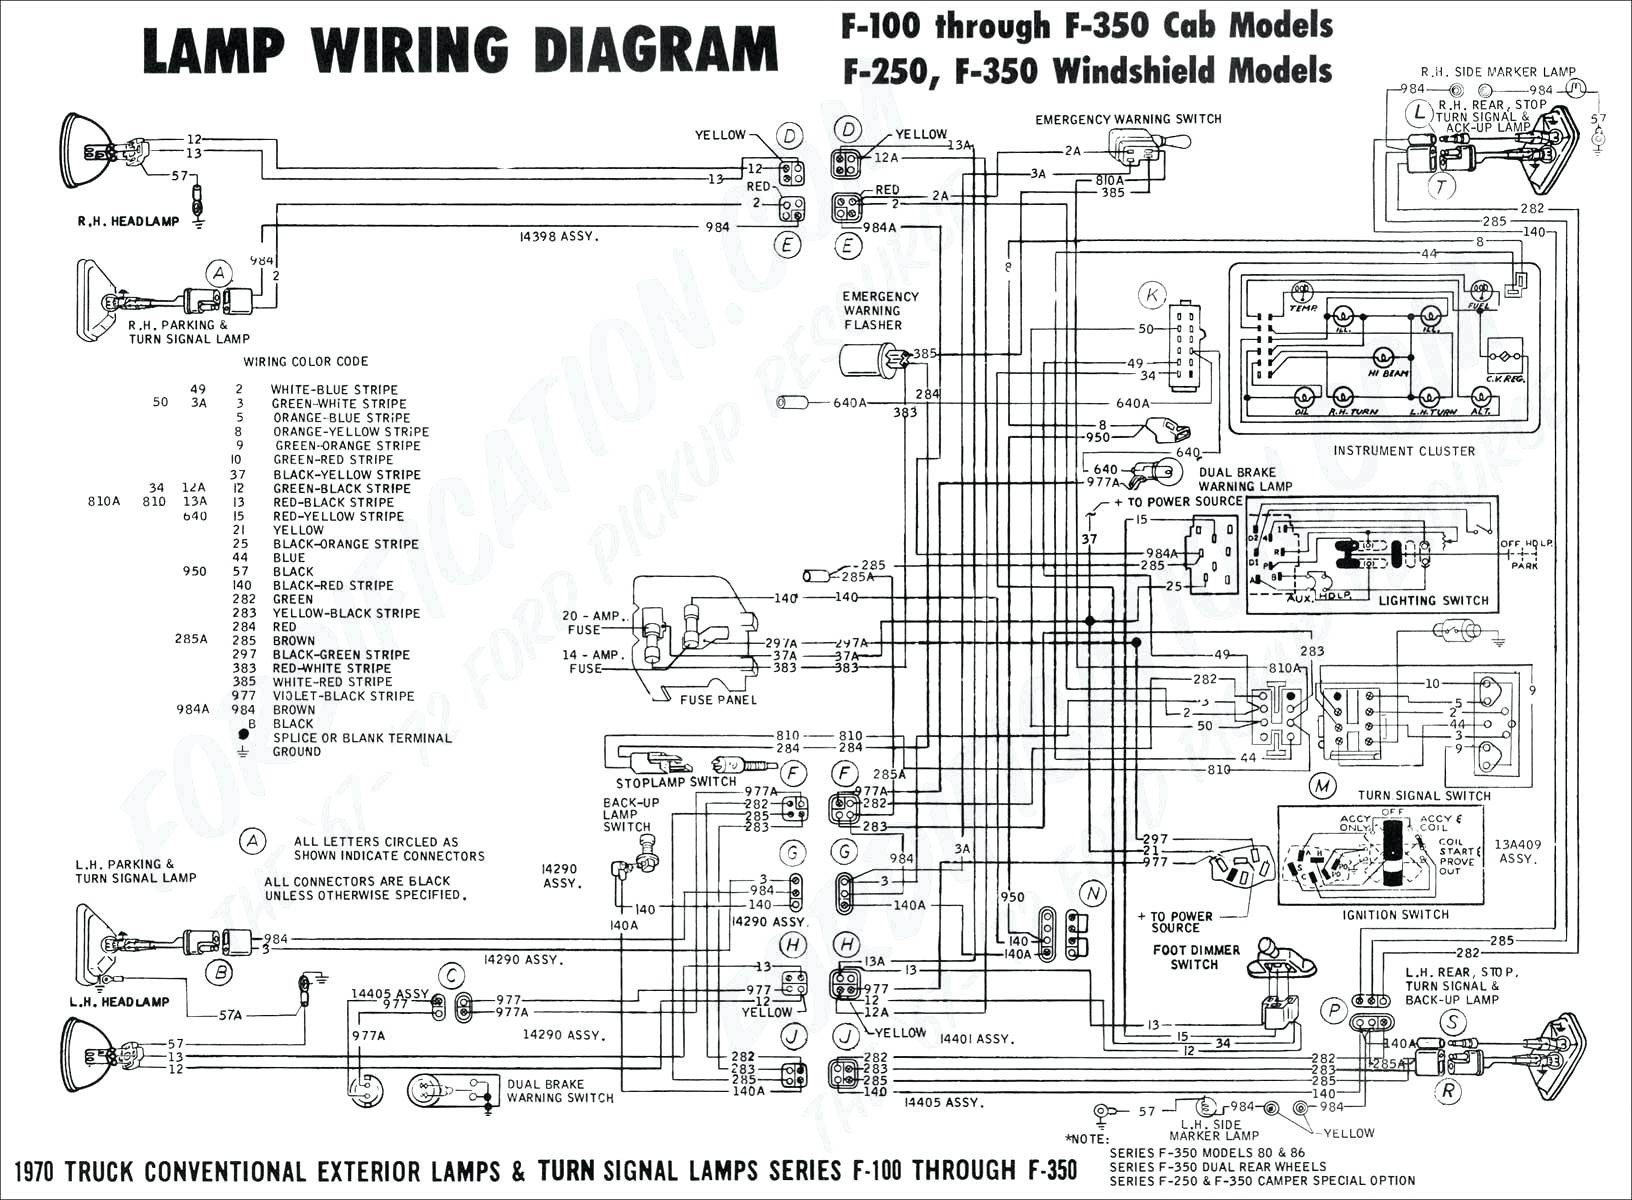 2005 Chevy Cavalier Engine Diagram ford Ecm Wiring Harness Trusted Wiring Diagrams • Of 2005 Chevy Cavalier Engine Diagram